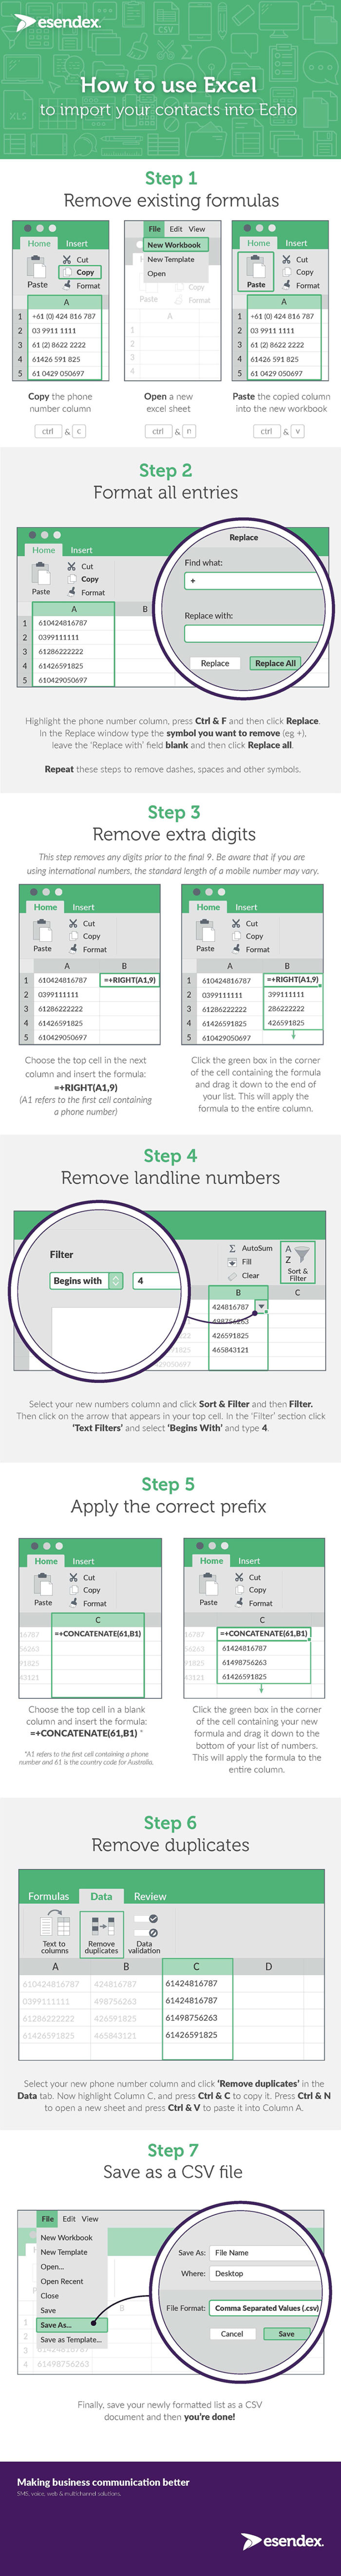 How to use excel to format phone numbers